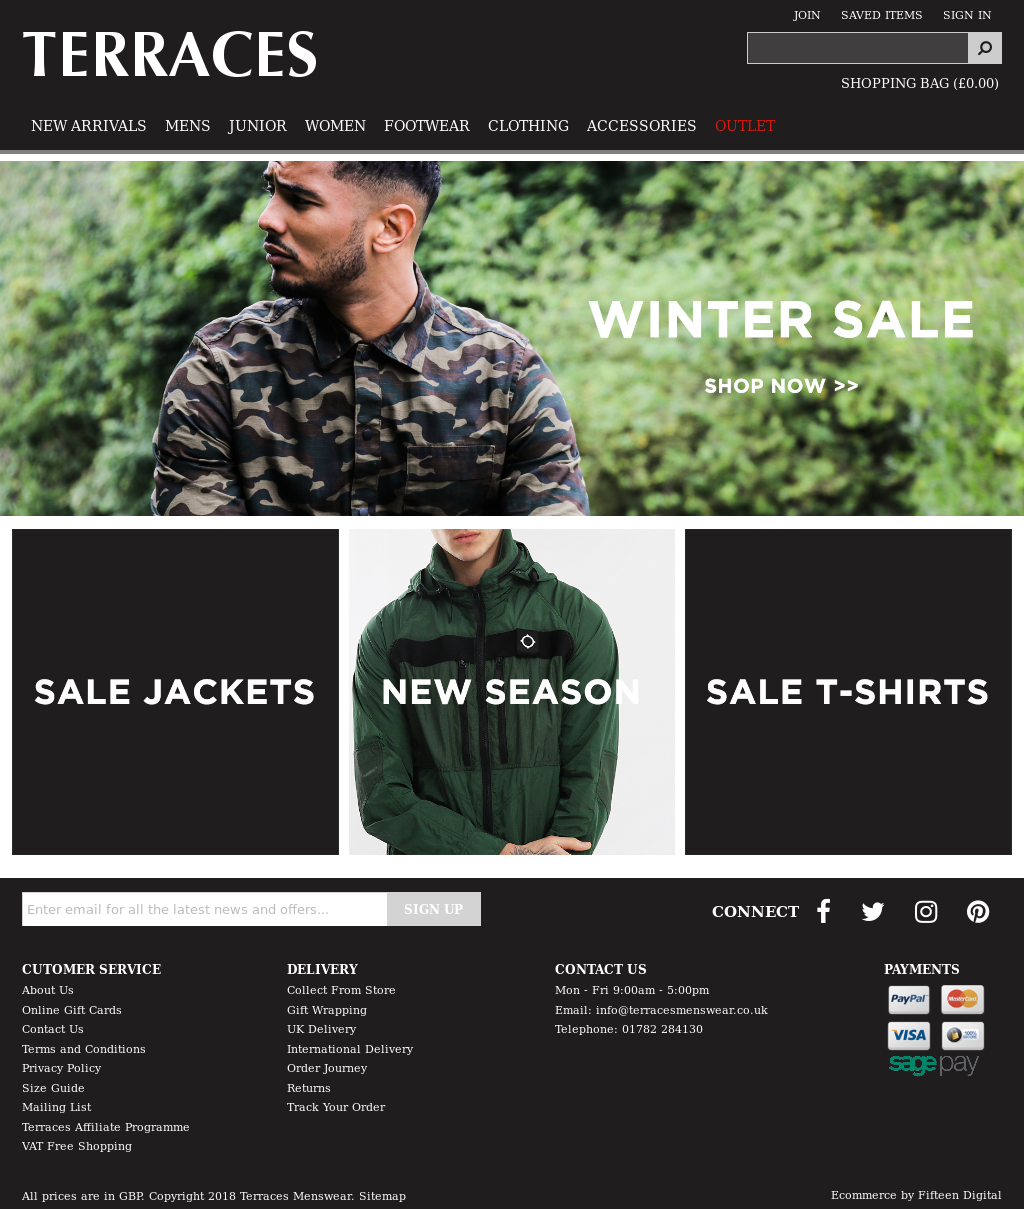 cc985299 Terraces Menswear Competitors, Revenue and Employees - Owler ...